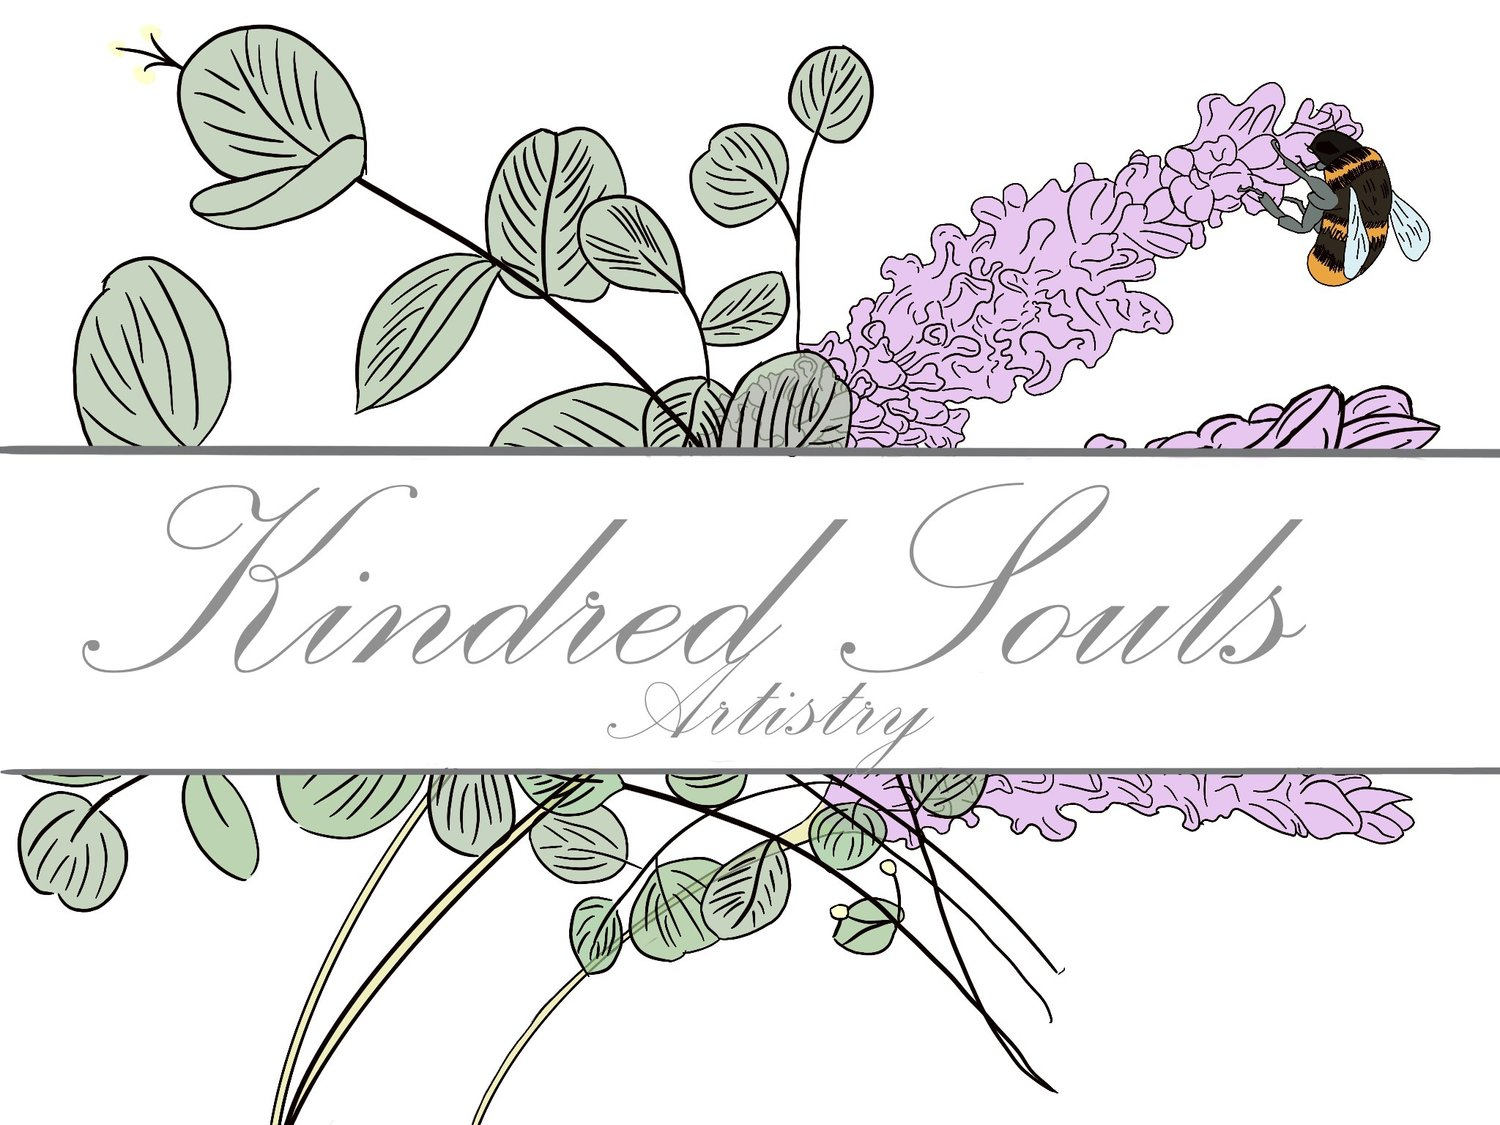 Kindred Souls Artistry